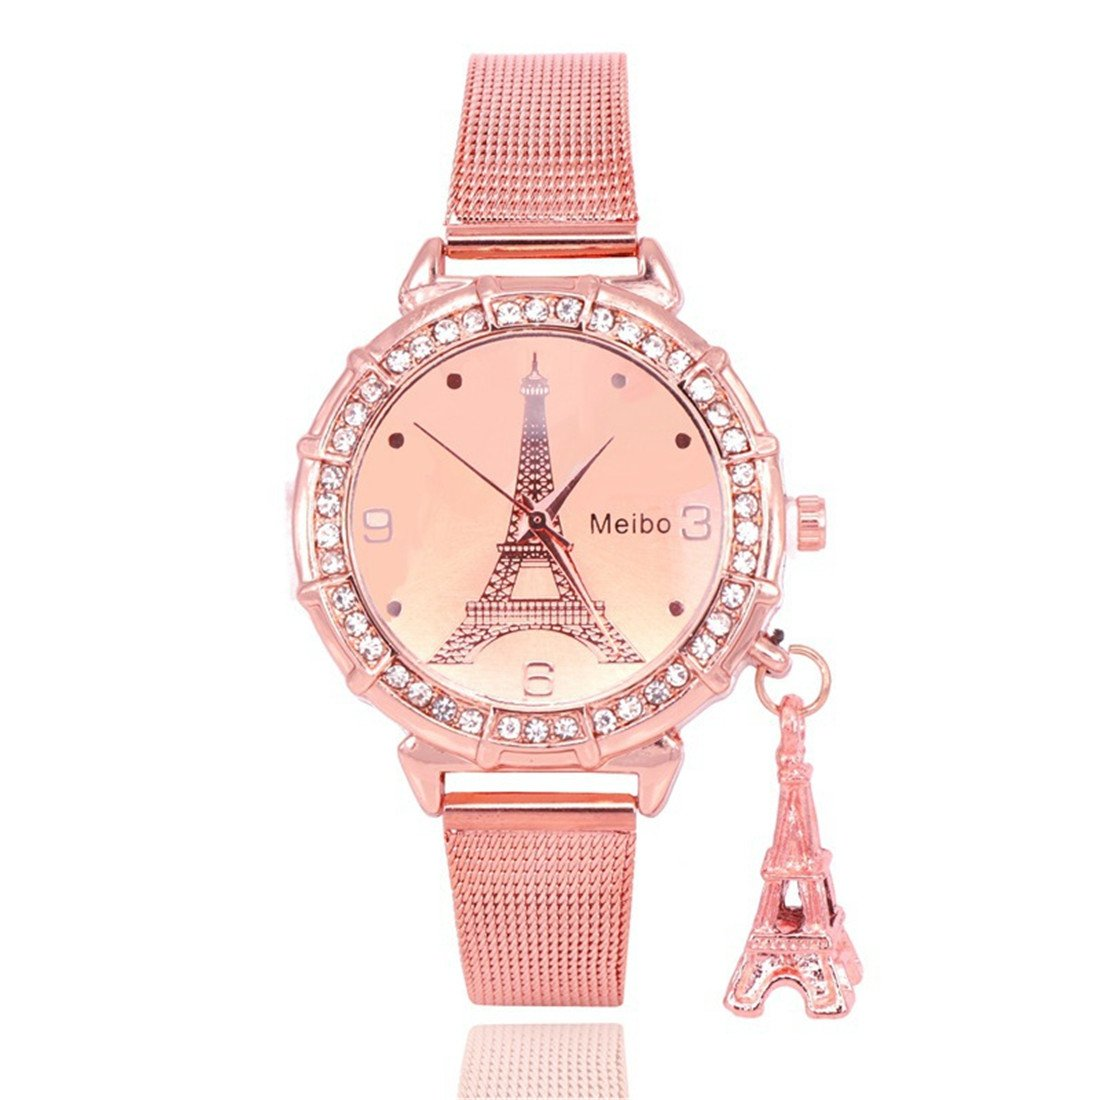 Loweryeah Rhinestone Around Case Eiffel Tower Print Quartz Watch Casual Strap with Eiffel Tower Pendant(Rose Gold Color)